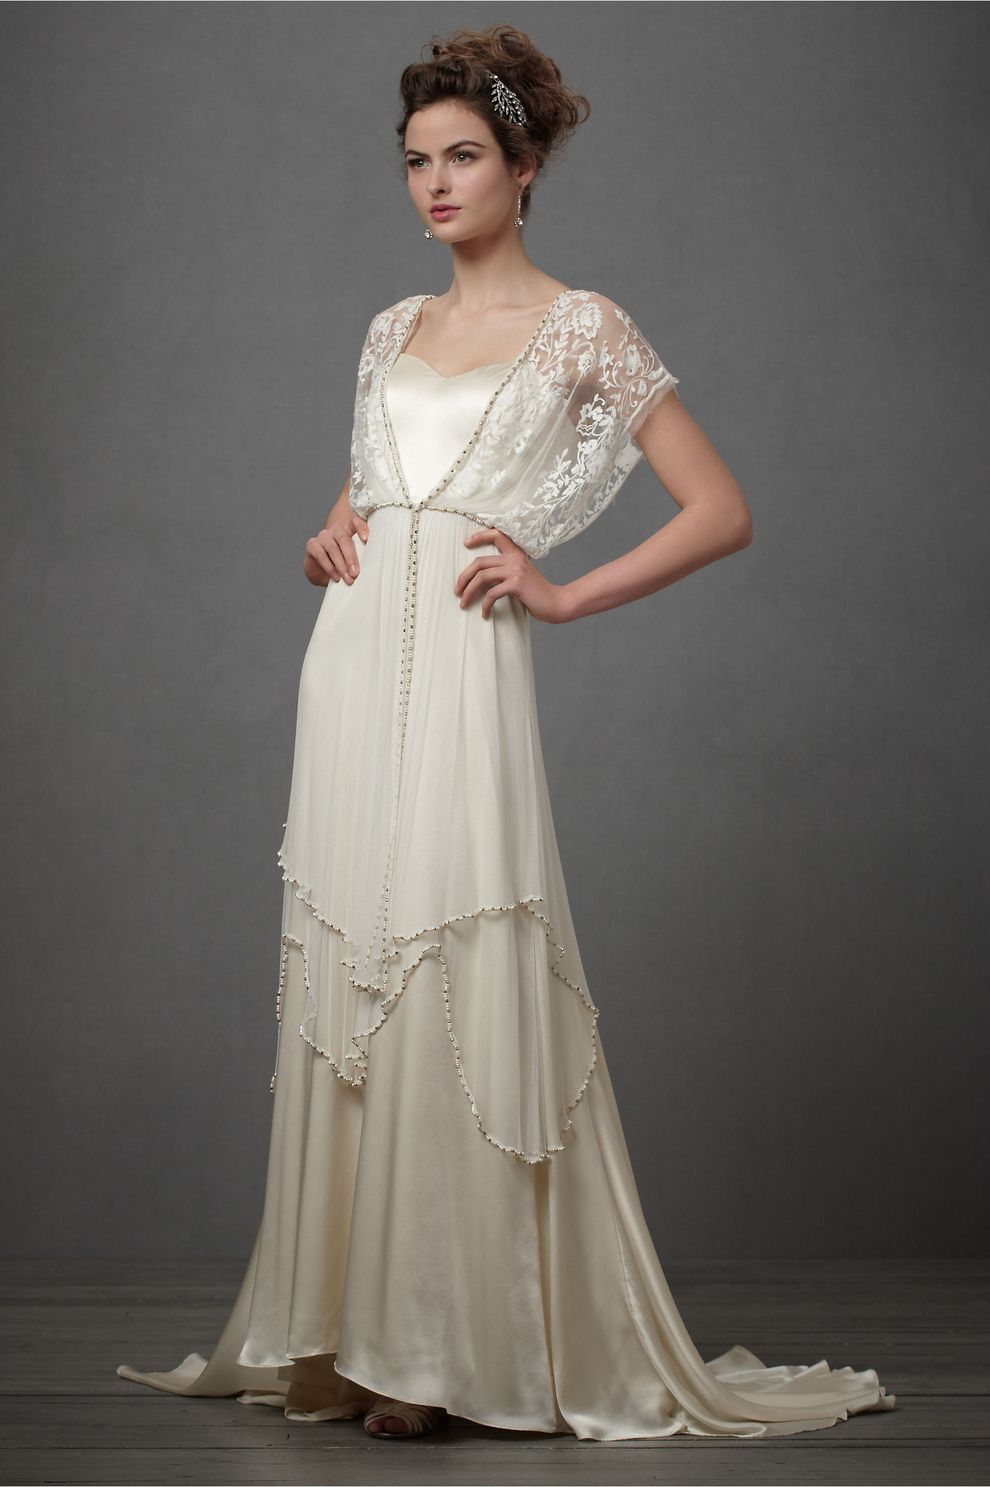 25 dazzling art deco wedding gowns pinterest 1920s art deco and that 1920s look is roaring back junglespirit Choice Image